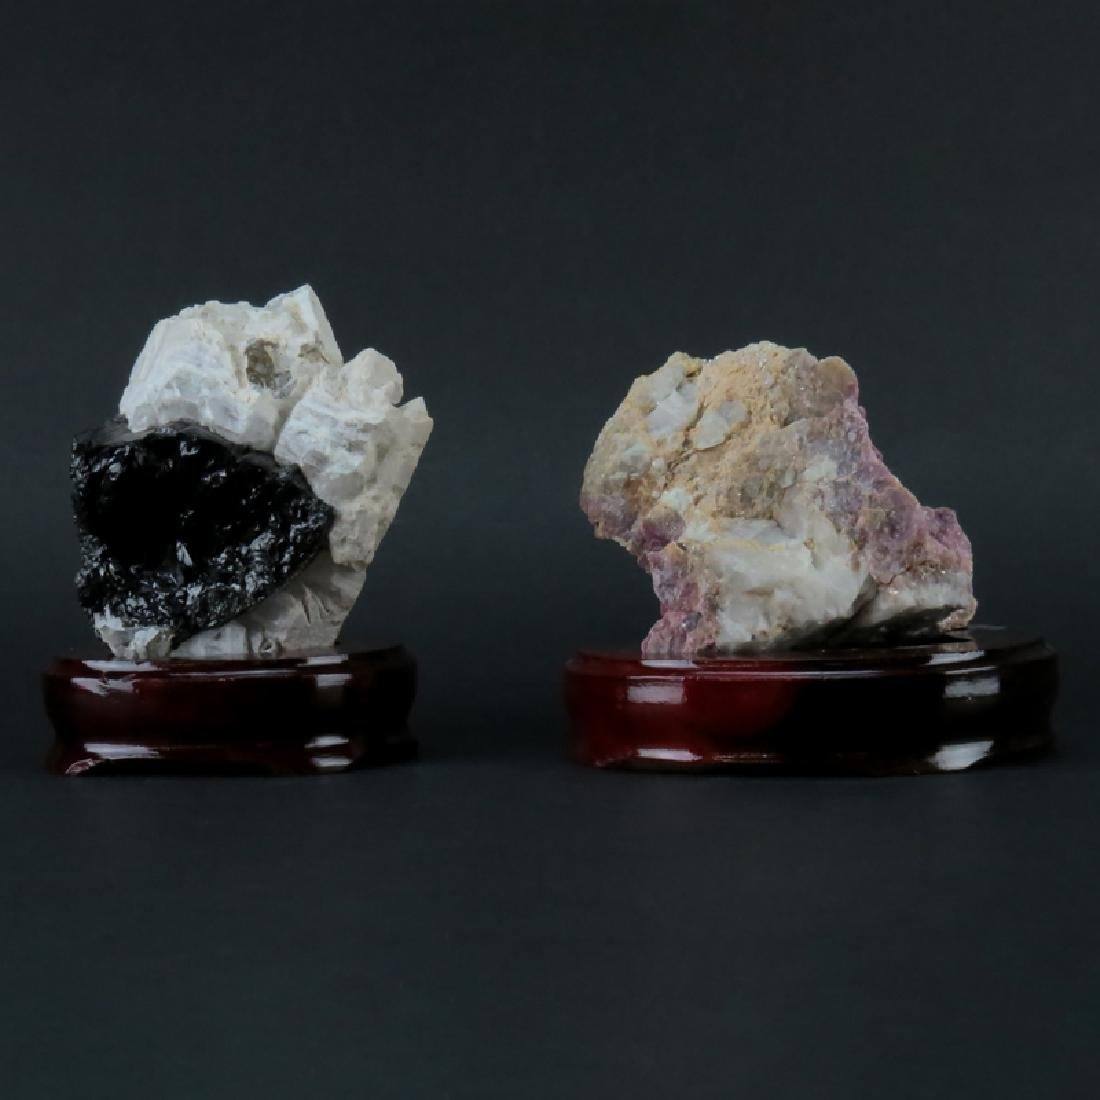 Two (2) Agate Mineral Specimens on Wooden Stands. Both